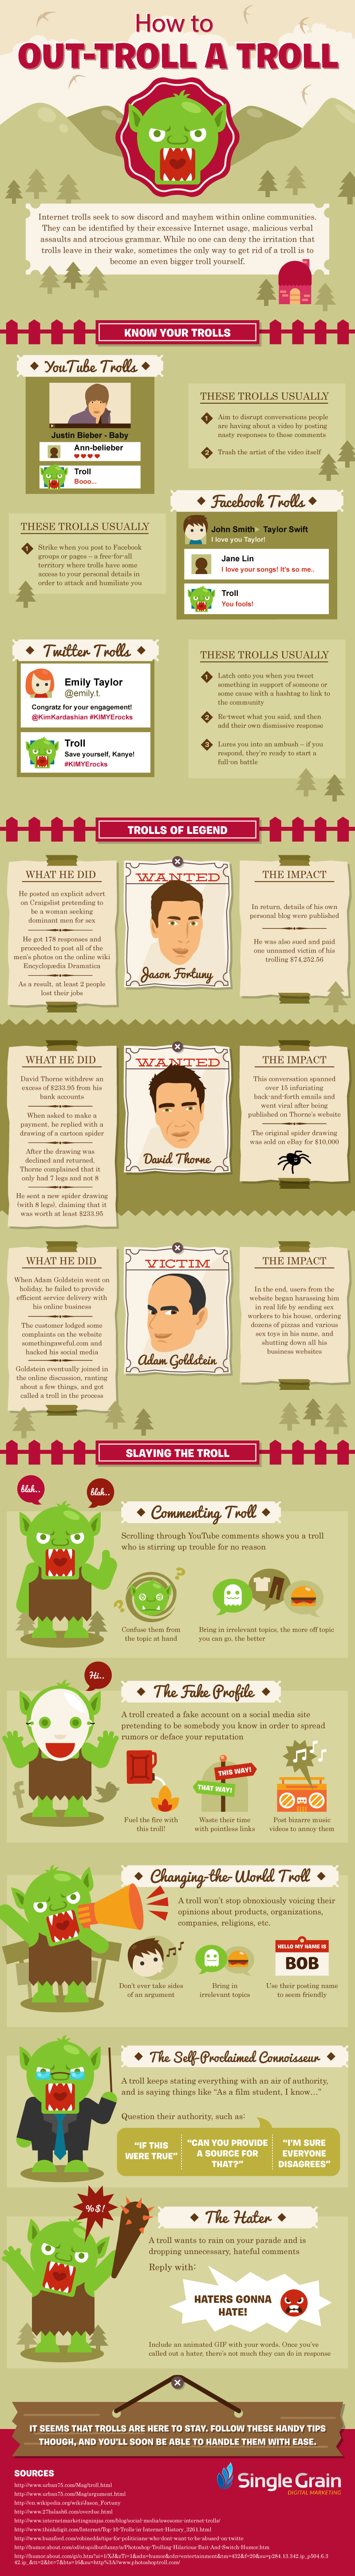 how-to-out-troll-a-troll-infographic